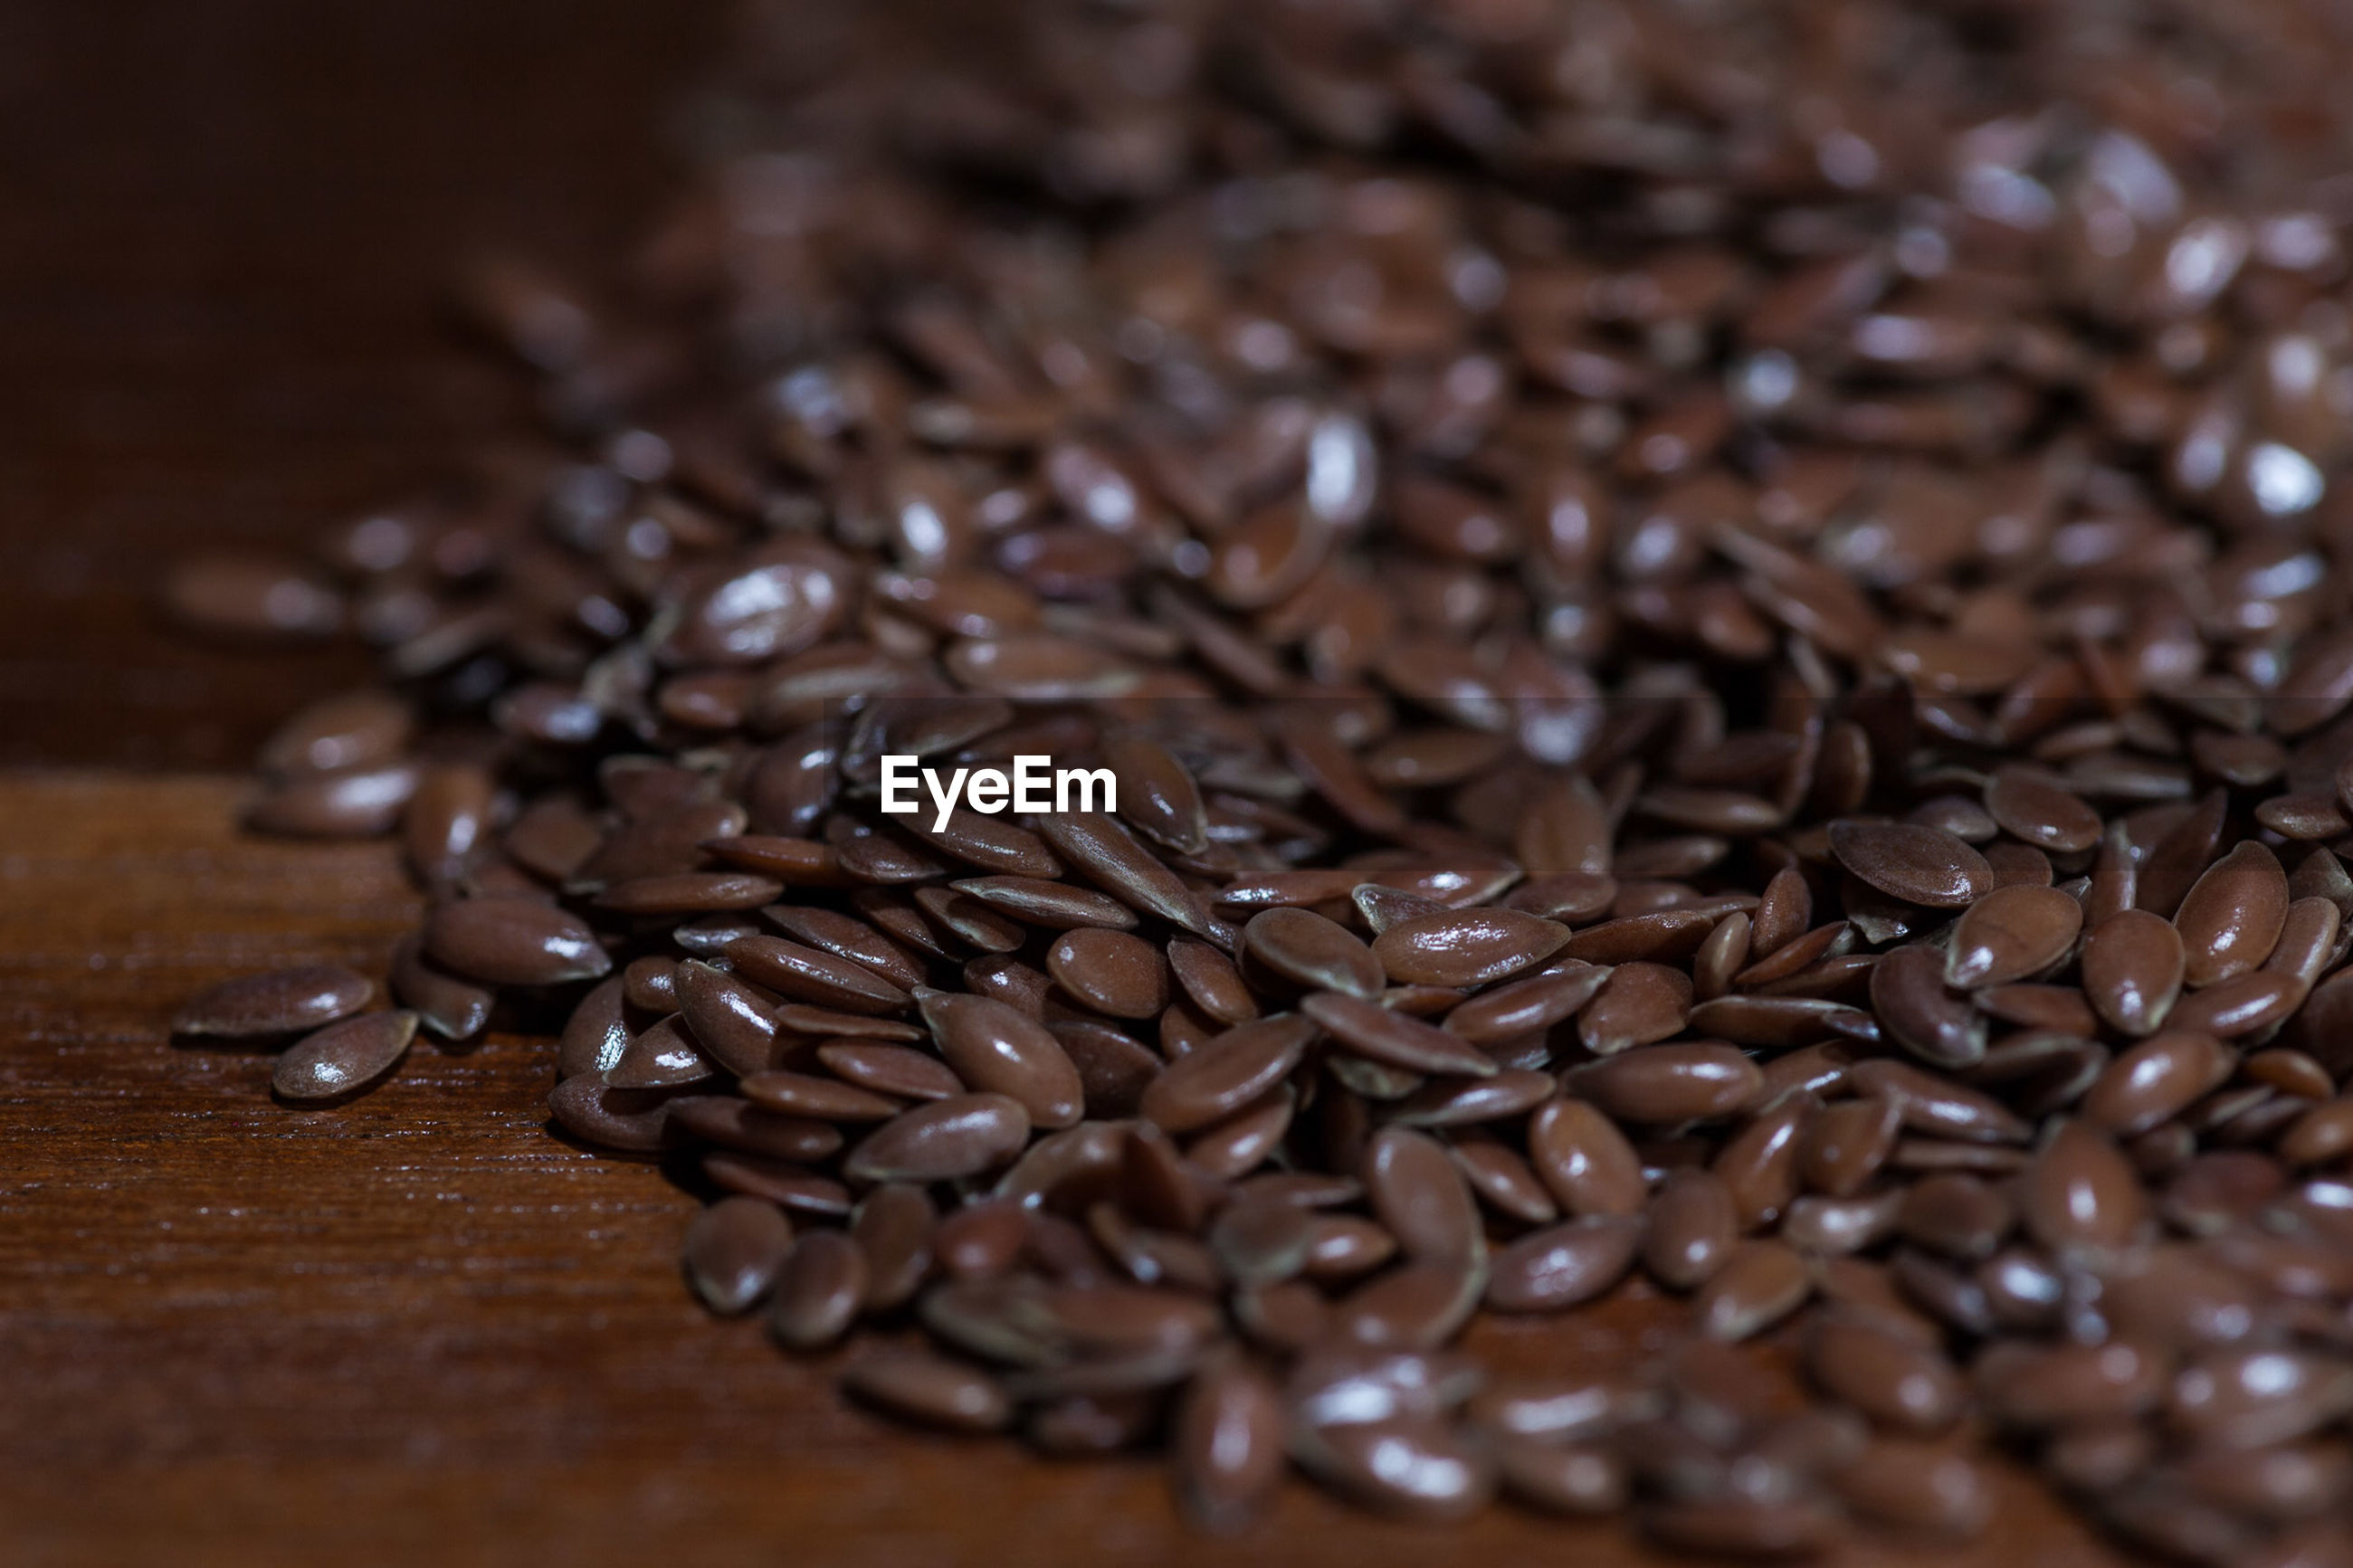 CLOSE-UP OF COFFEE BEANS AND TABLE ON GLASS